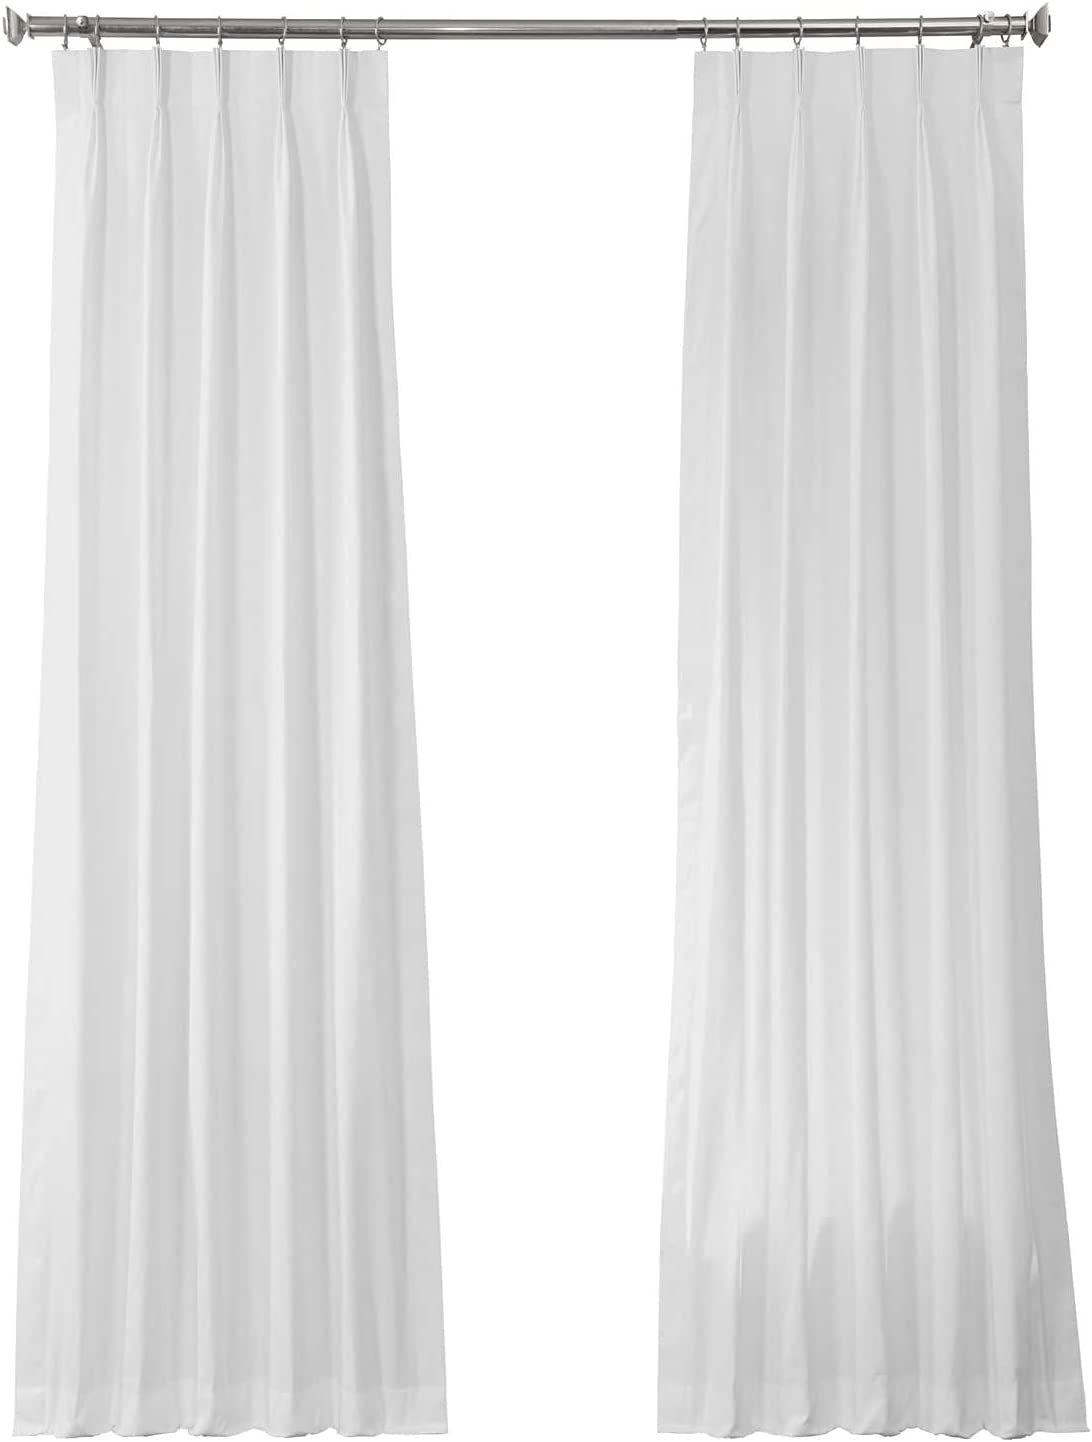 HPD Half Price Drapes 100% quality warranty! PRCT-S19B-84-FP Pleated Cotton Curta Ranking TOP19 Solid